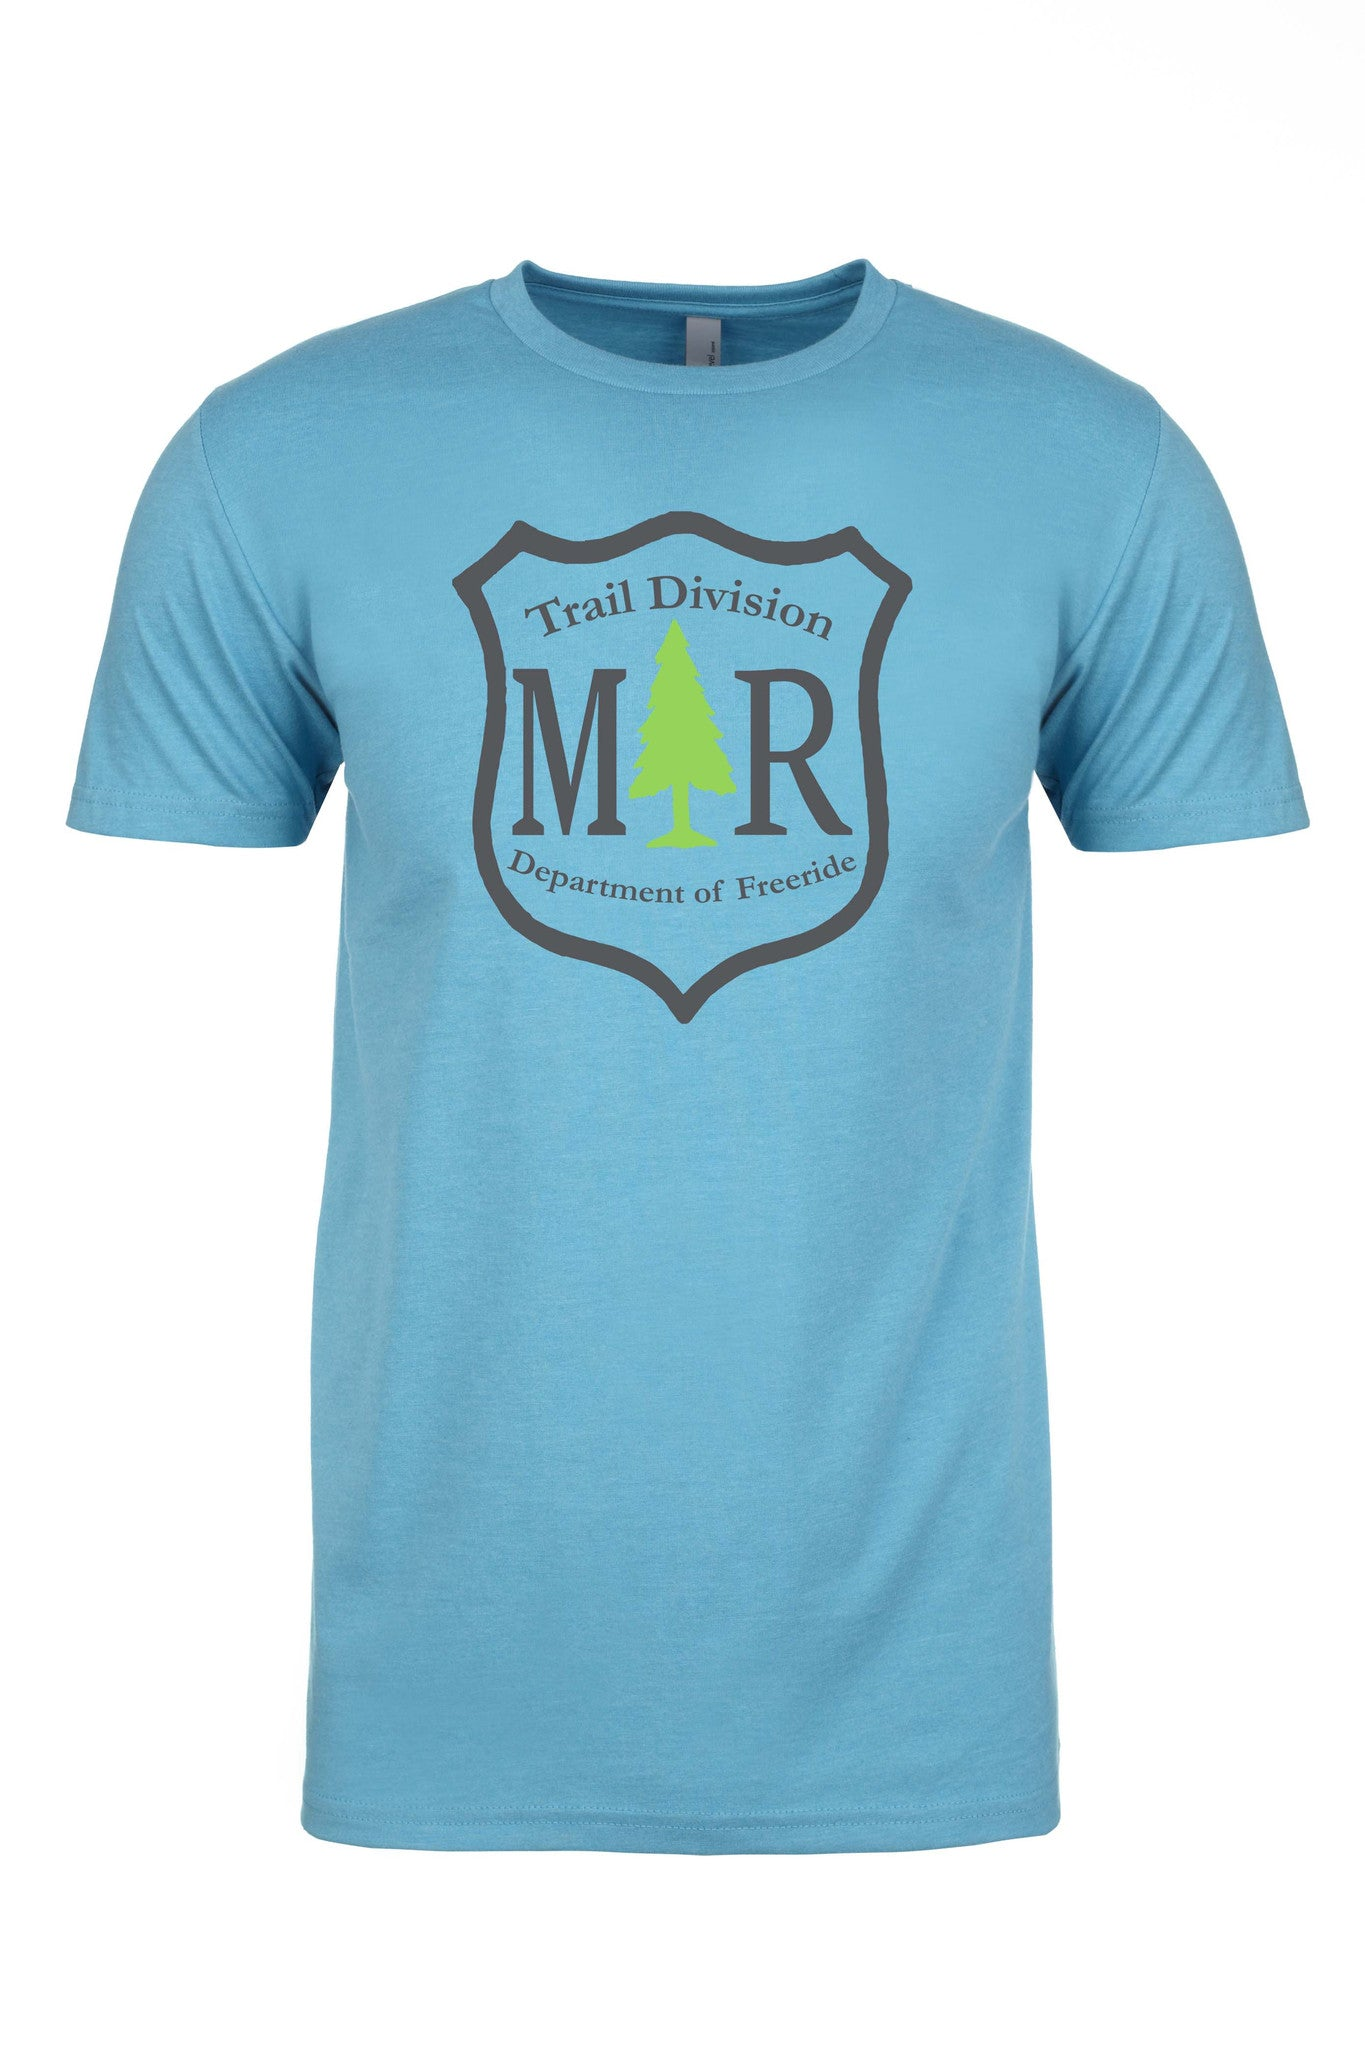 mountain bike shirt